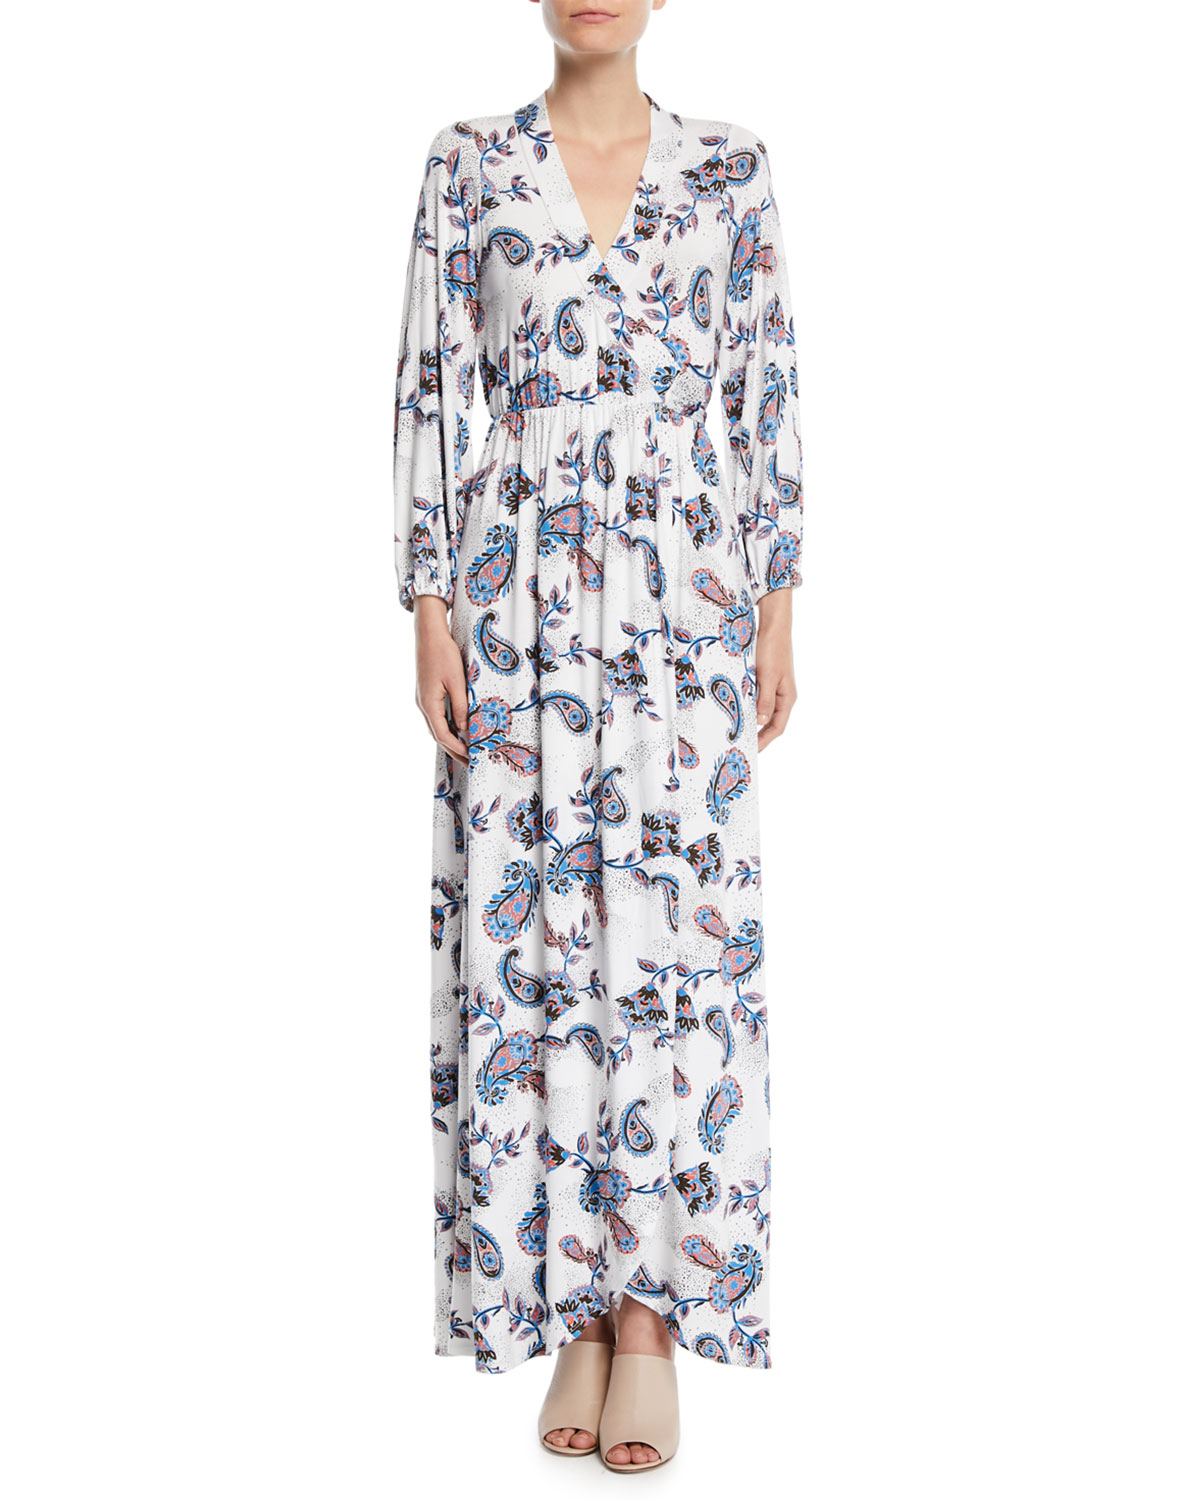 GREENWICH LONG-SLEEVE PAISLEY WRAP MAXI DRESS, PLUS SIZE